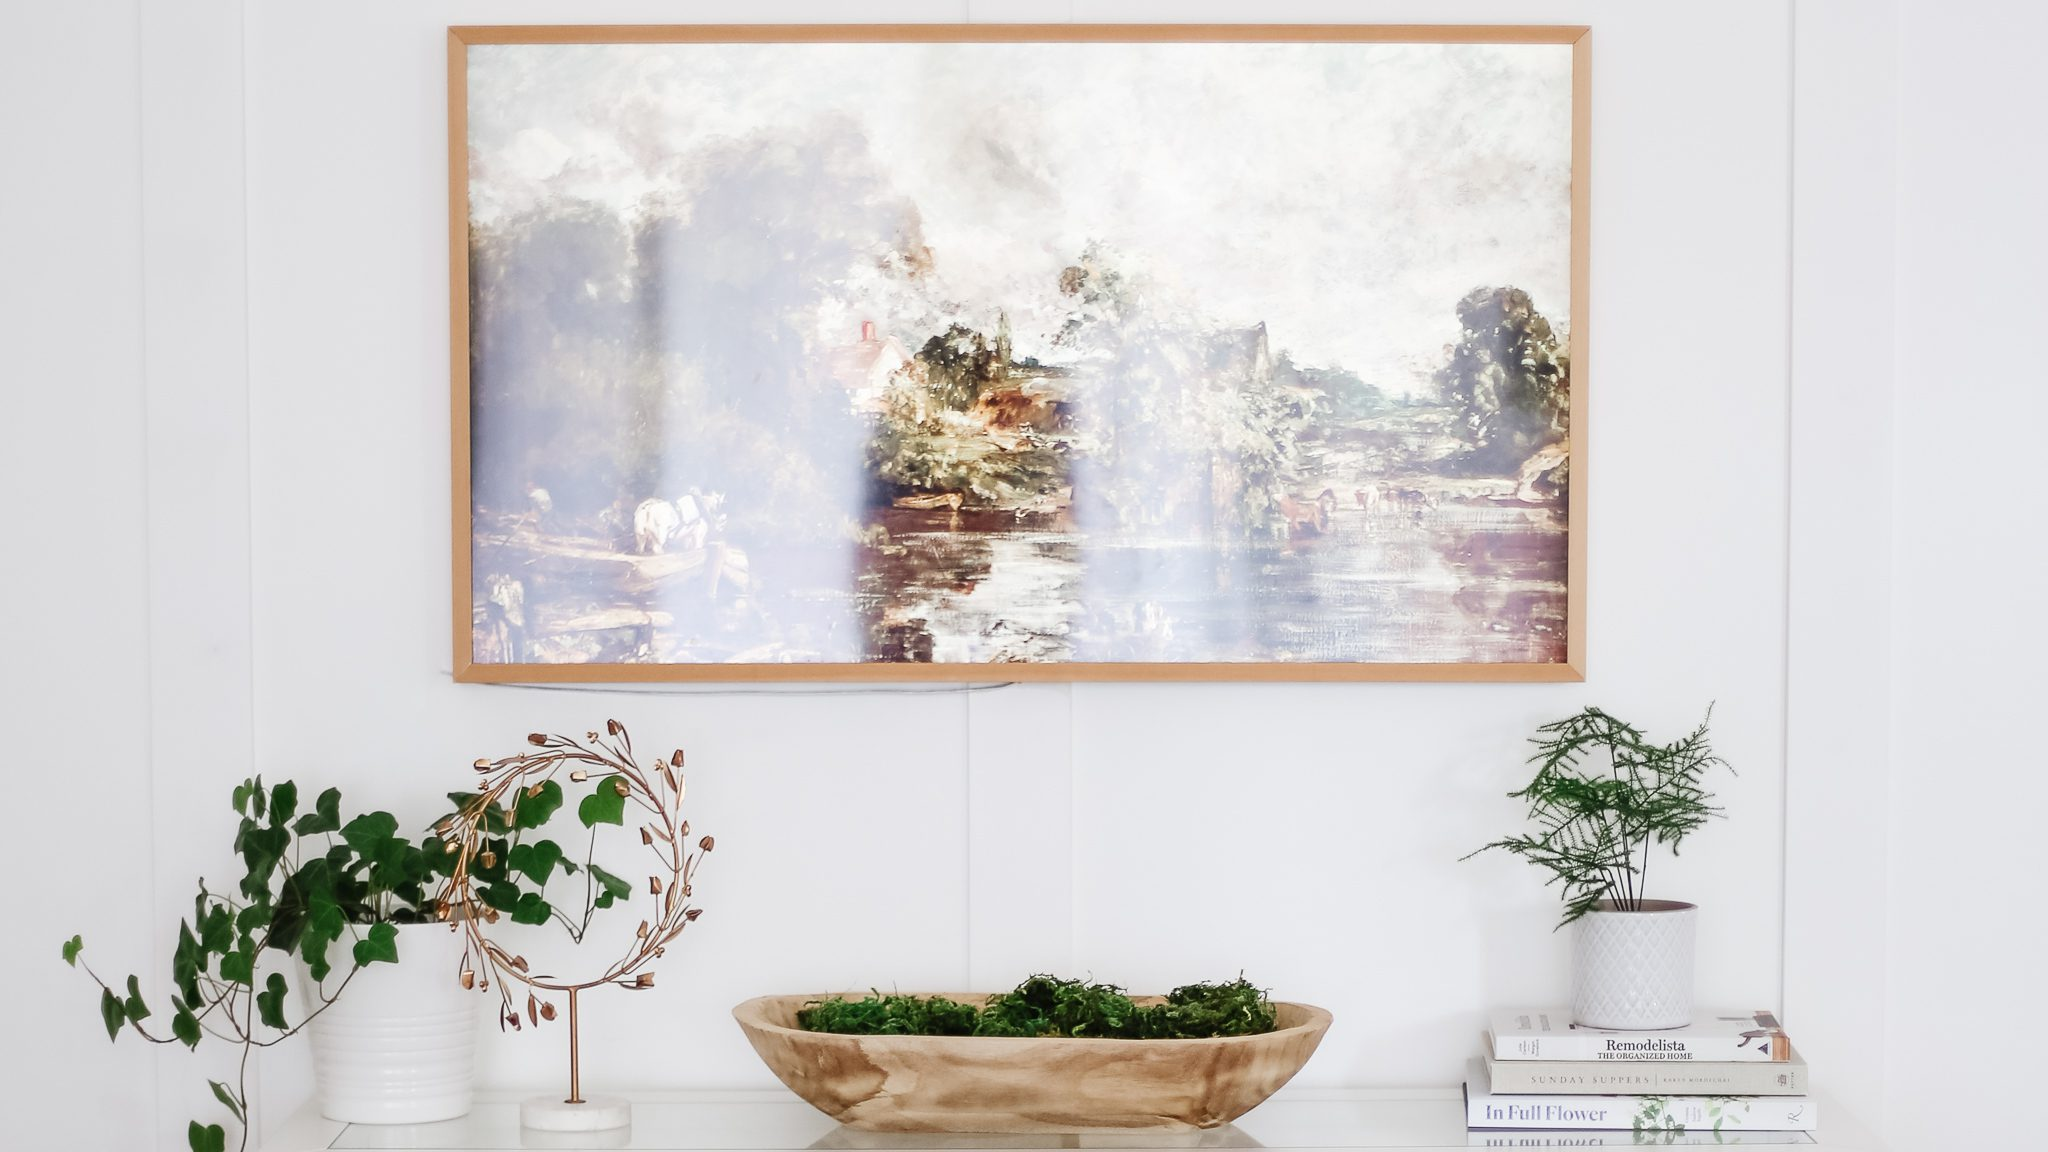 A Samsung Frame TV with framless art loaded of a beautiful vintage painting